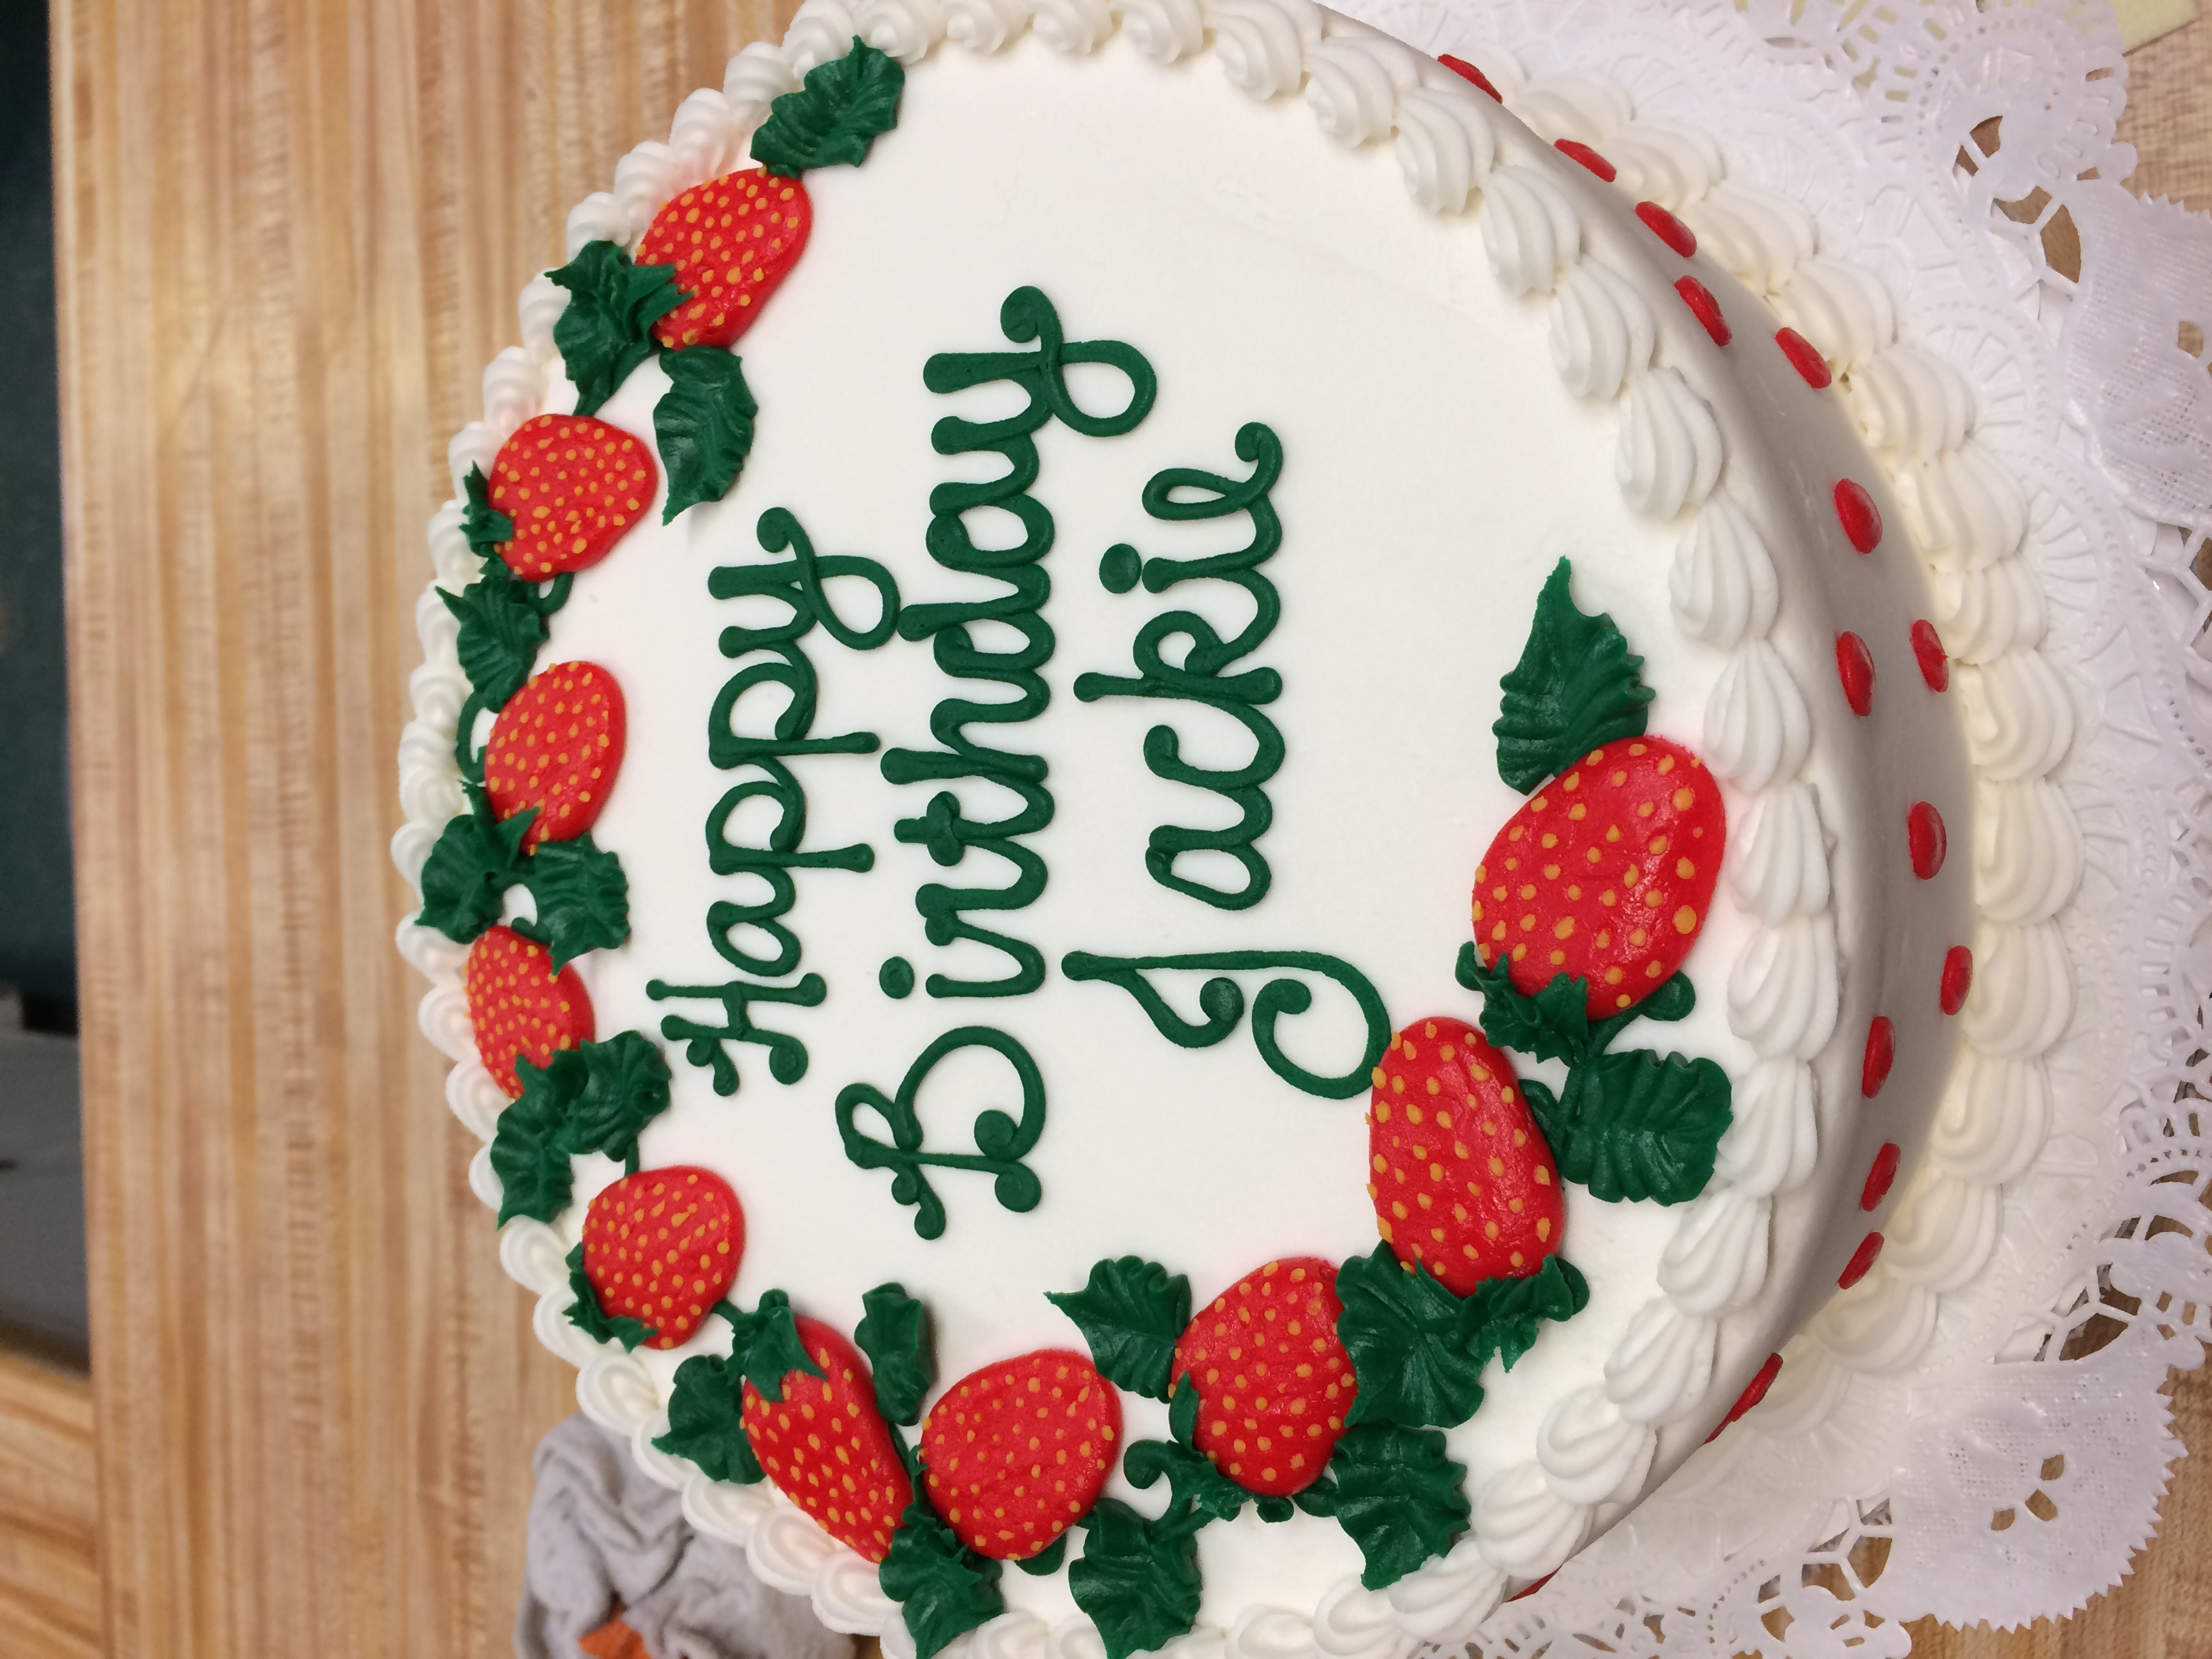 Buttercream Strawberry Cake 81